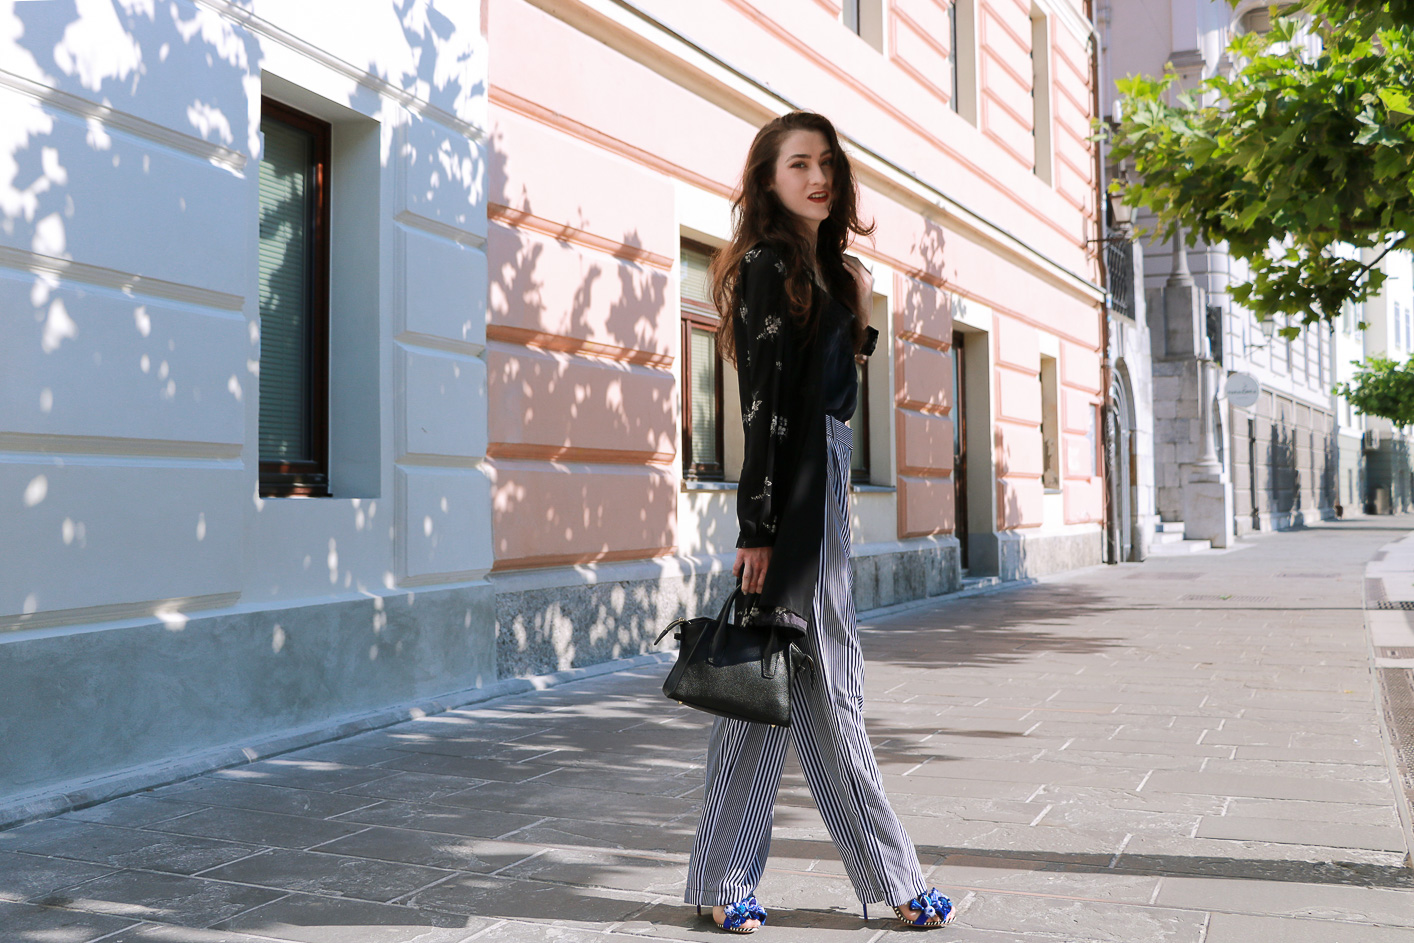 Fashion blogger Veronika Lipar of Brunette From Wall Street sharing how to style layers in the summer, wearing dark floral shirt dress and wide-leg pants